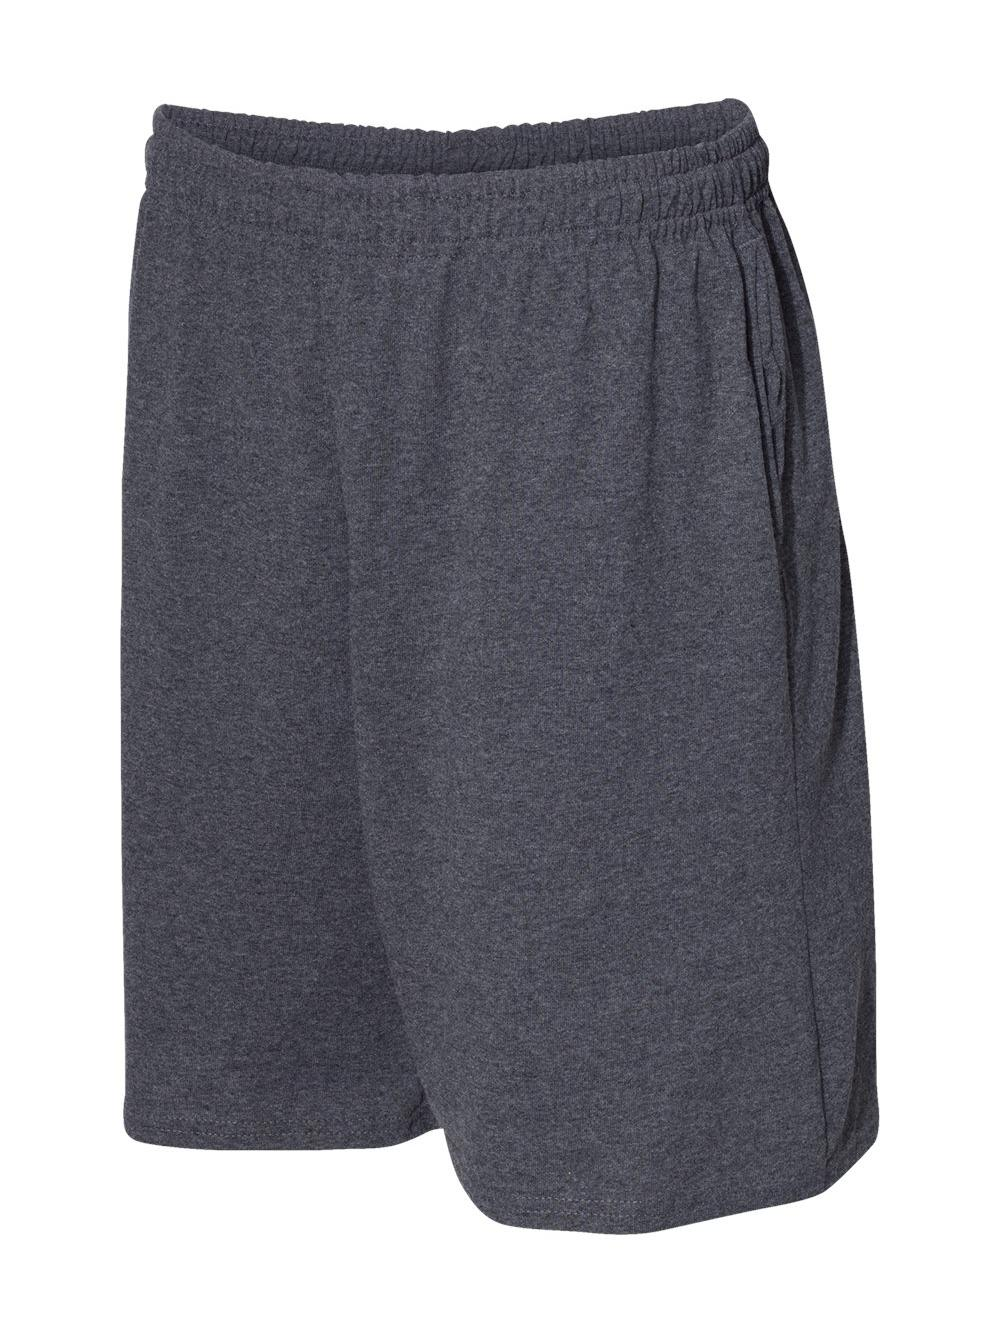 Russell-Athletic-Essential-Jersey-Cotton-Shorts-with-Pockets-25843M thumbnail 7